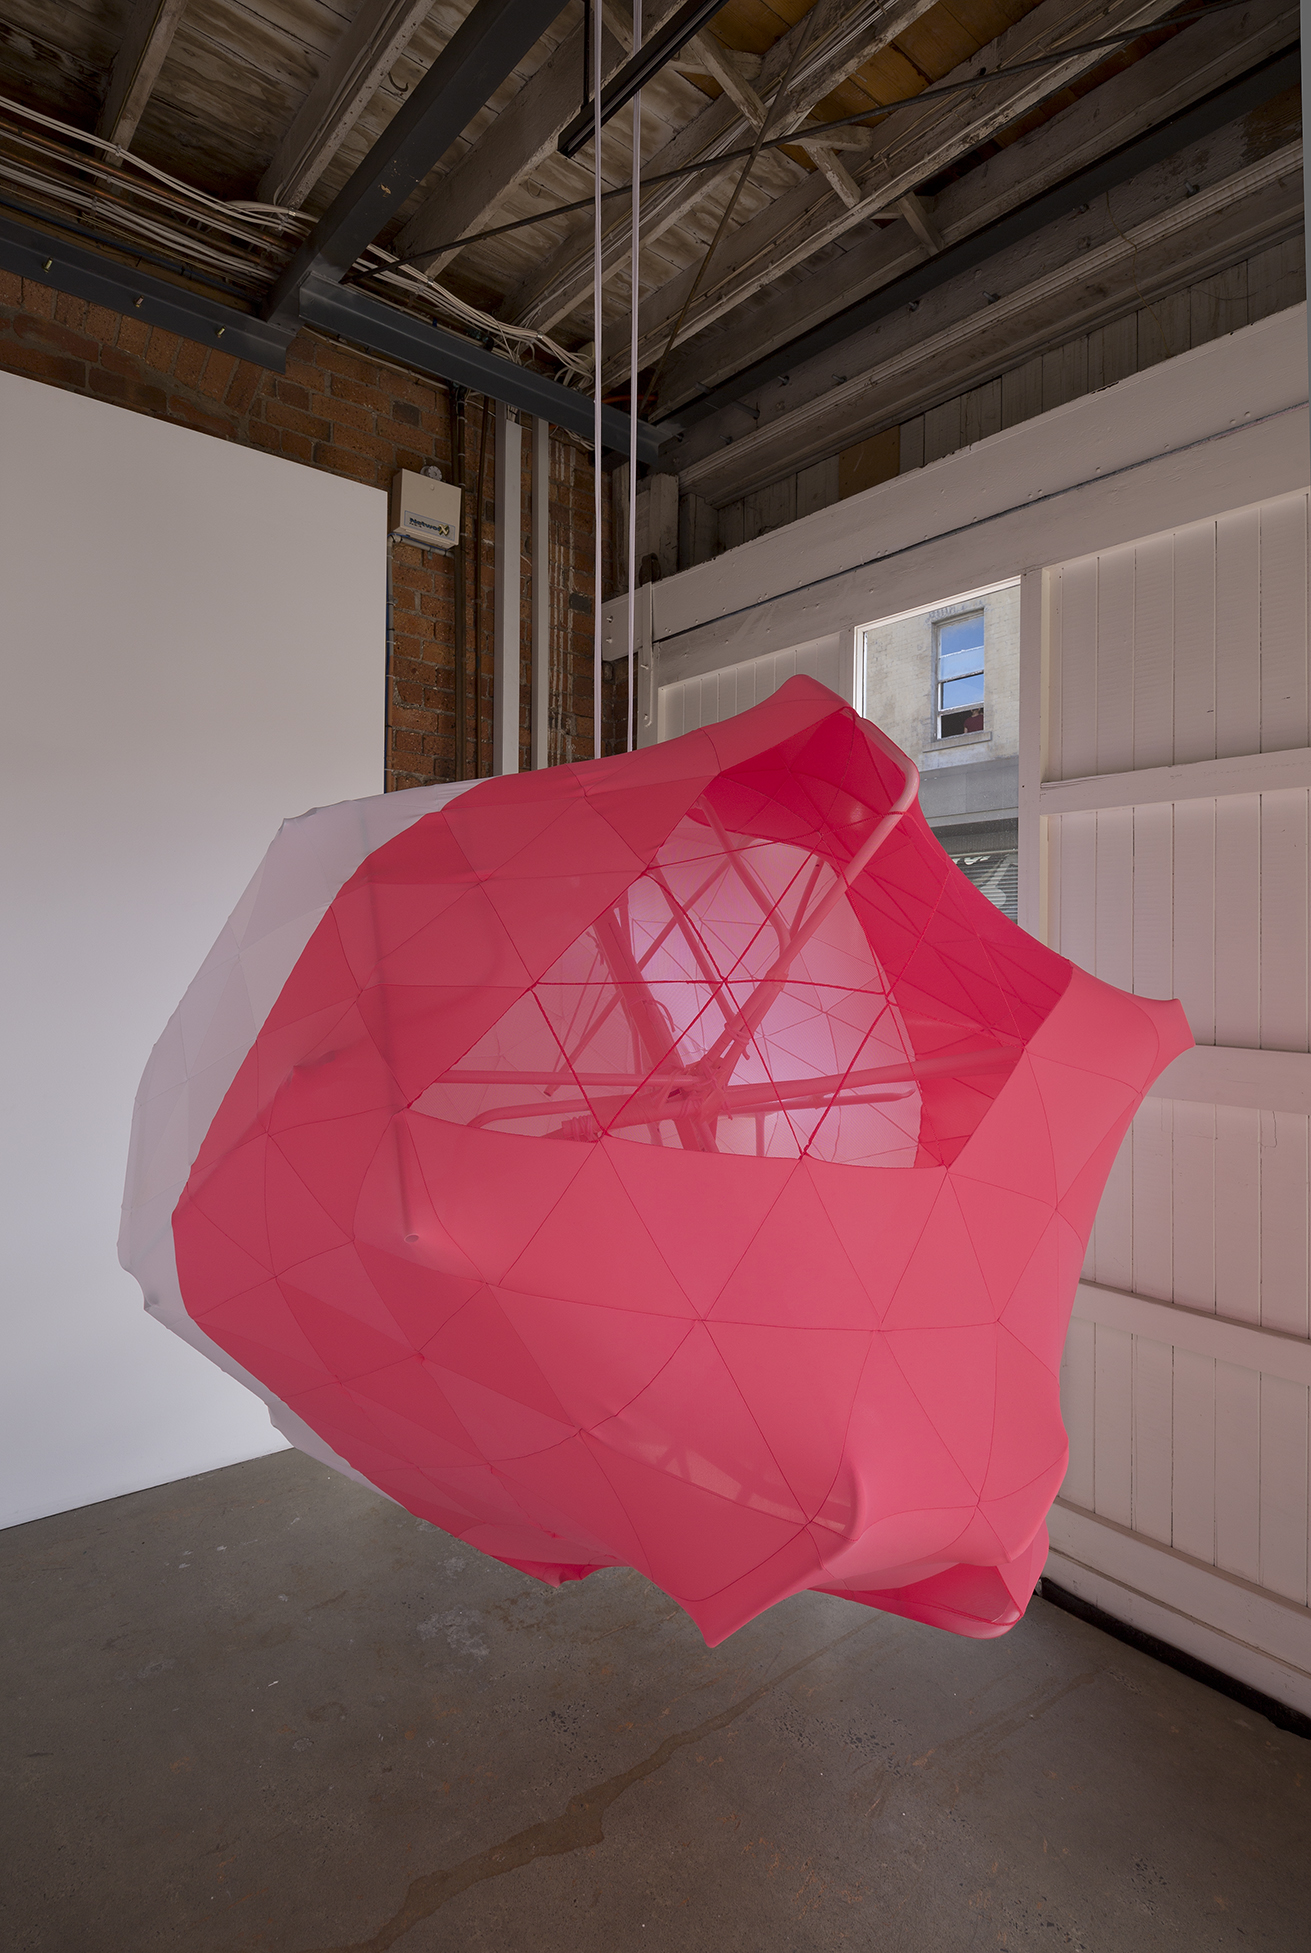 Melanie Irwin, Hemispherical Envelope (Coral, White), 2017, Found modified metal frames, lycra, cotton twine, electrical tape